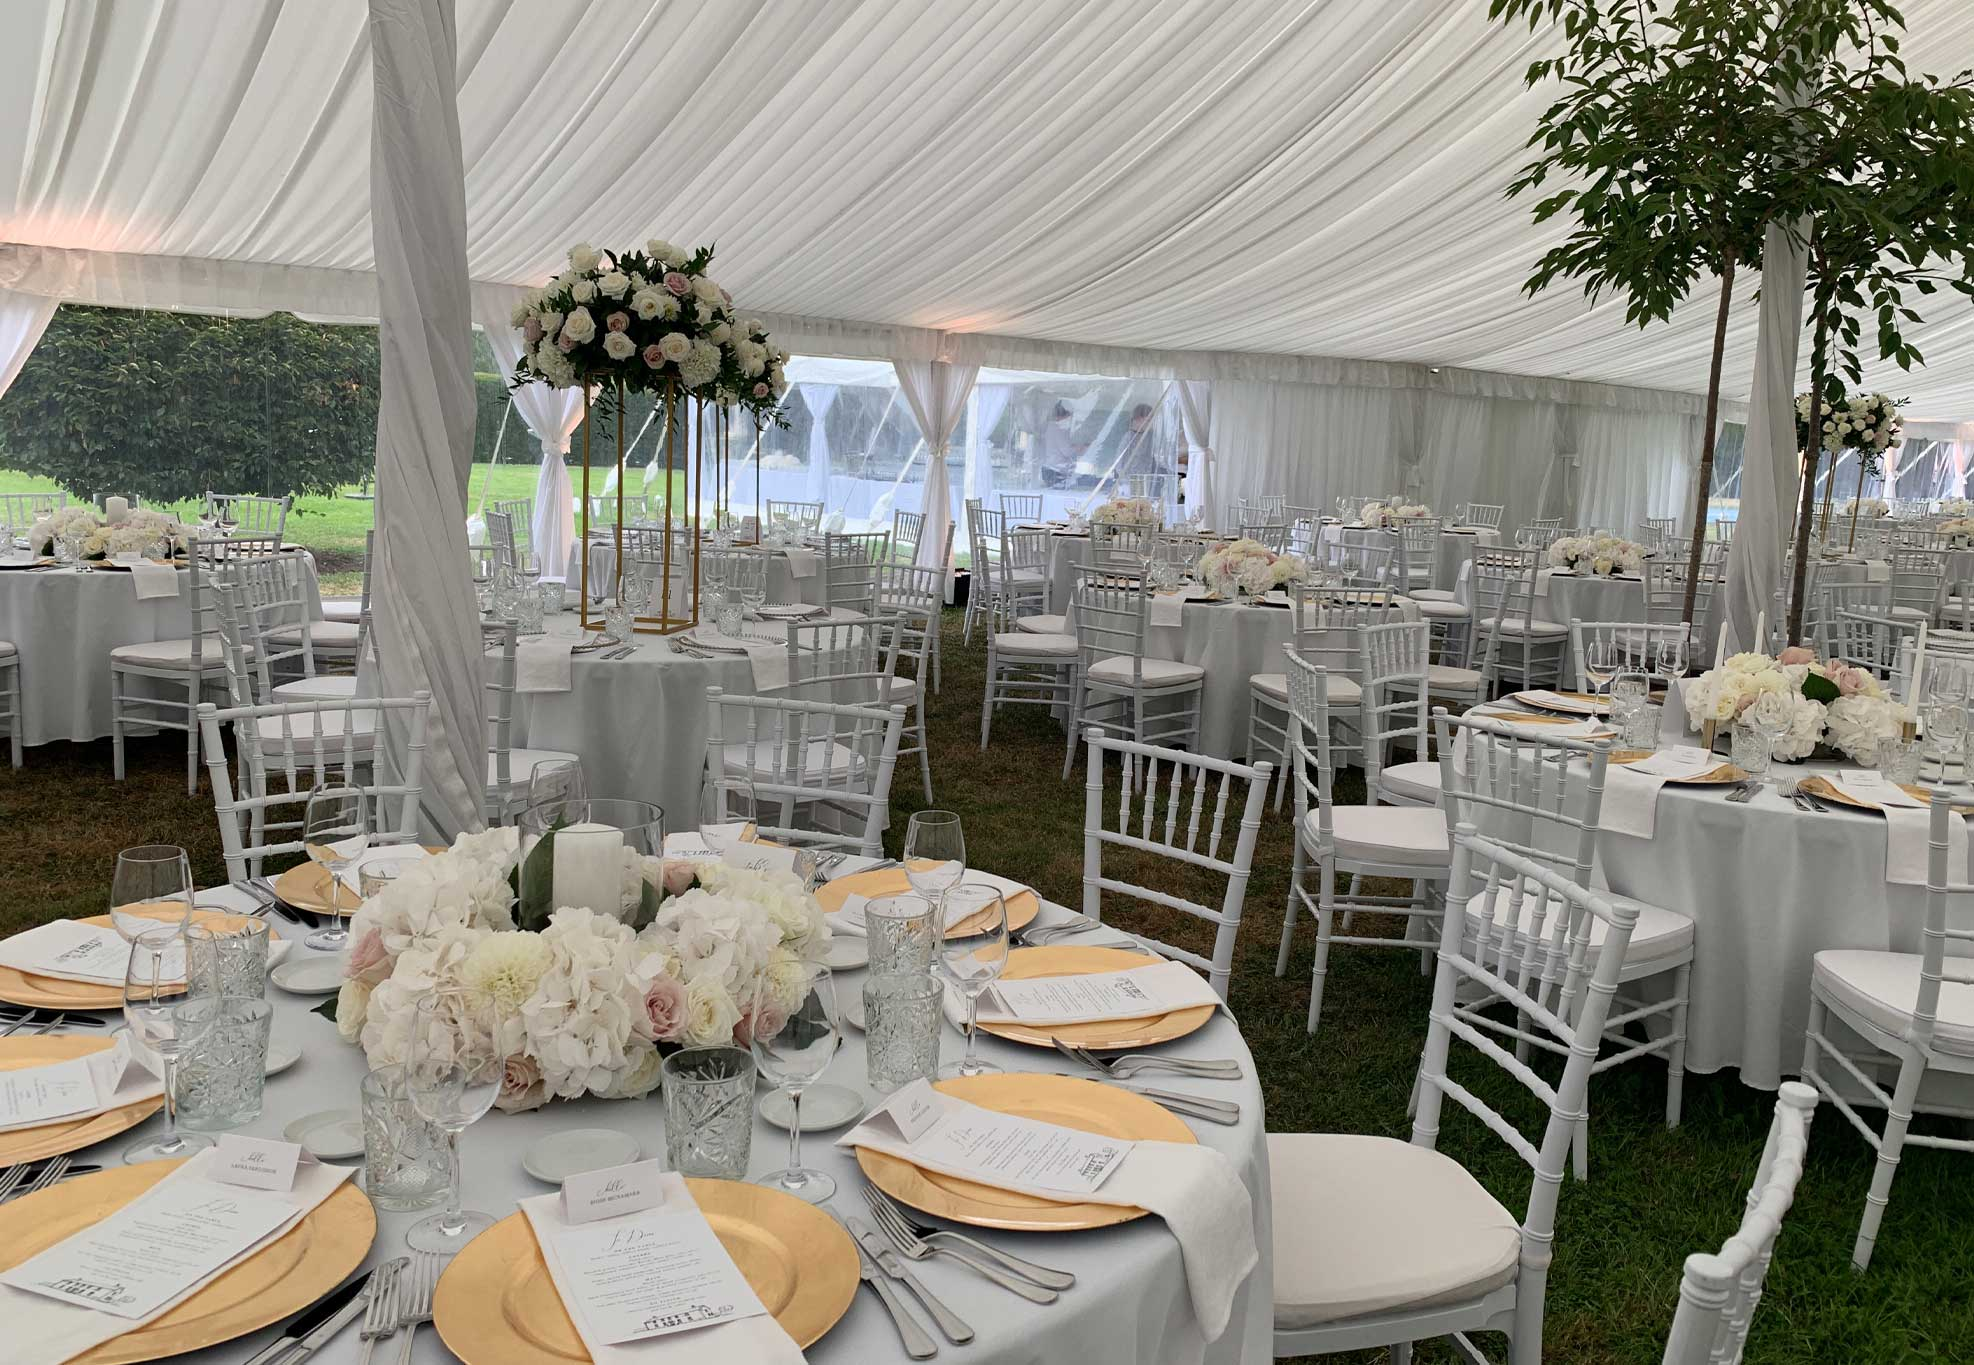 silk-estate-marquee-weddings-and-events-styling-and-hire-furniture-chairs-chivari-2